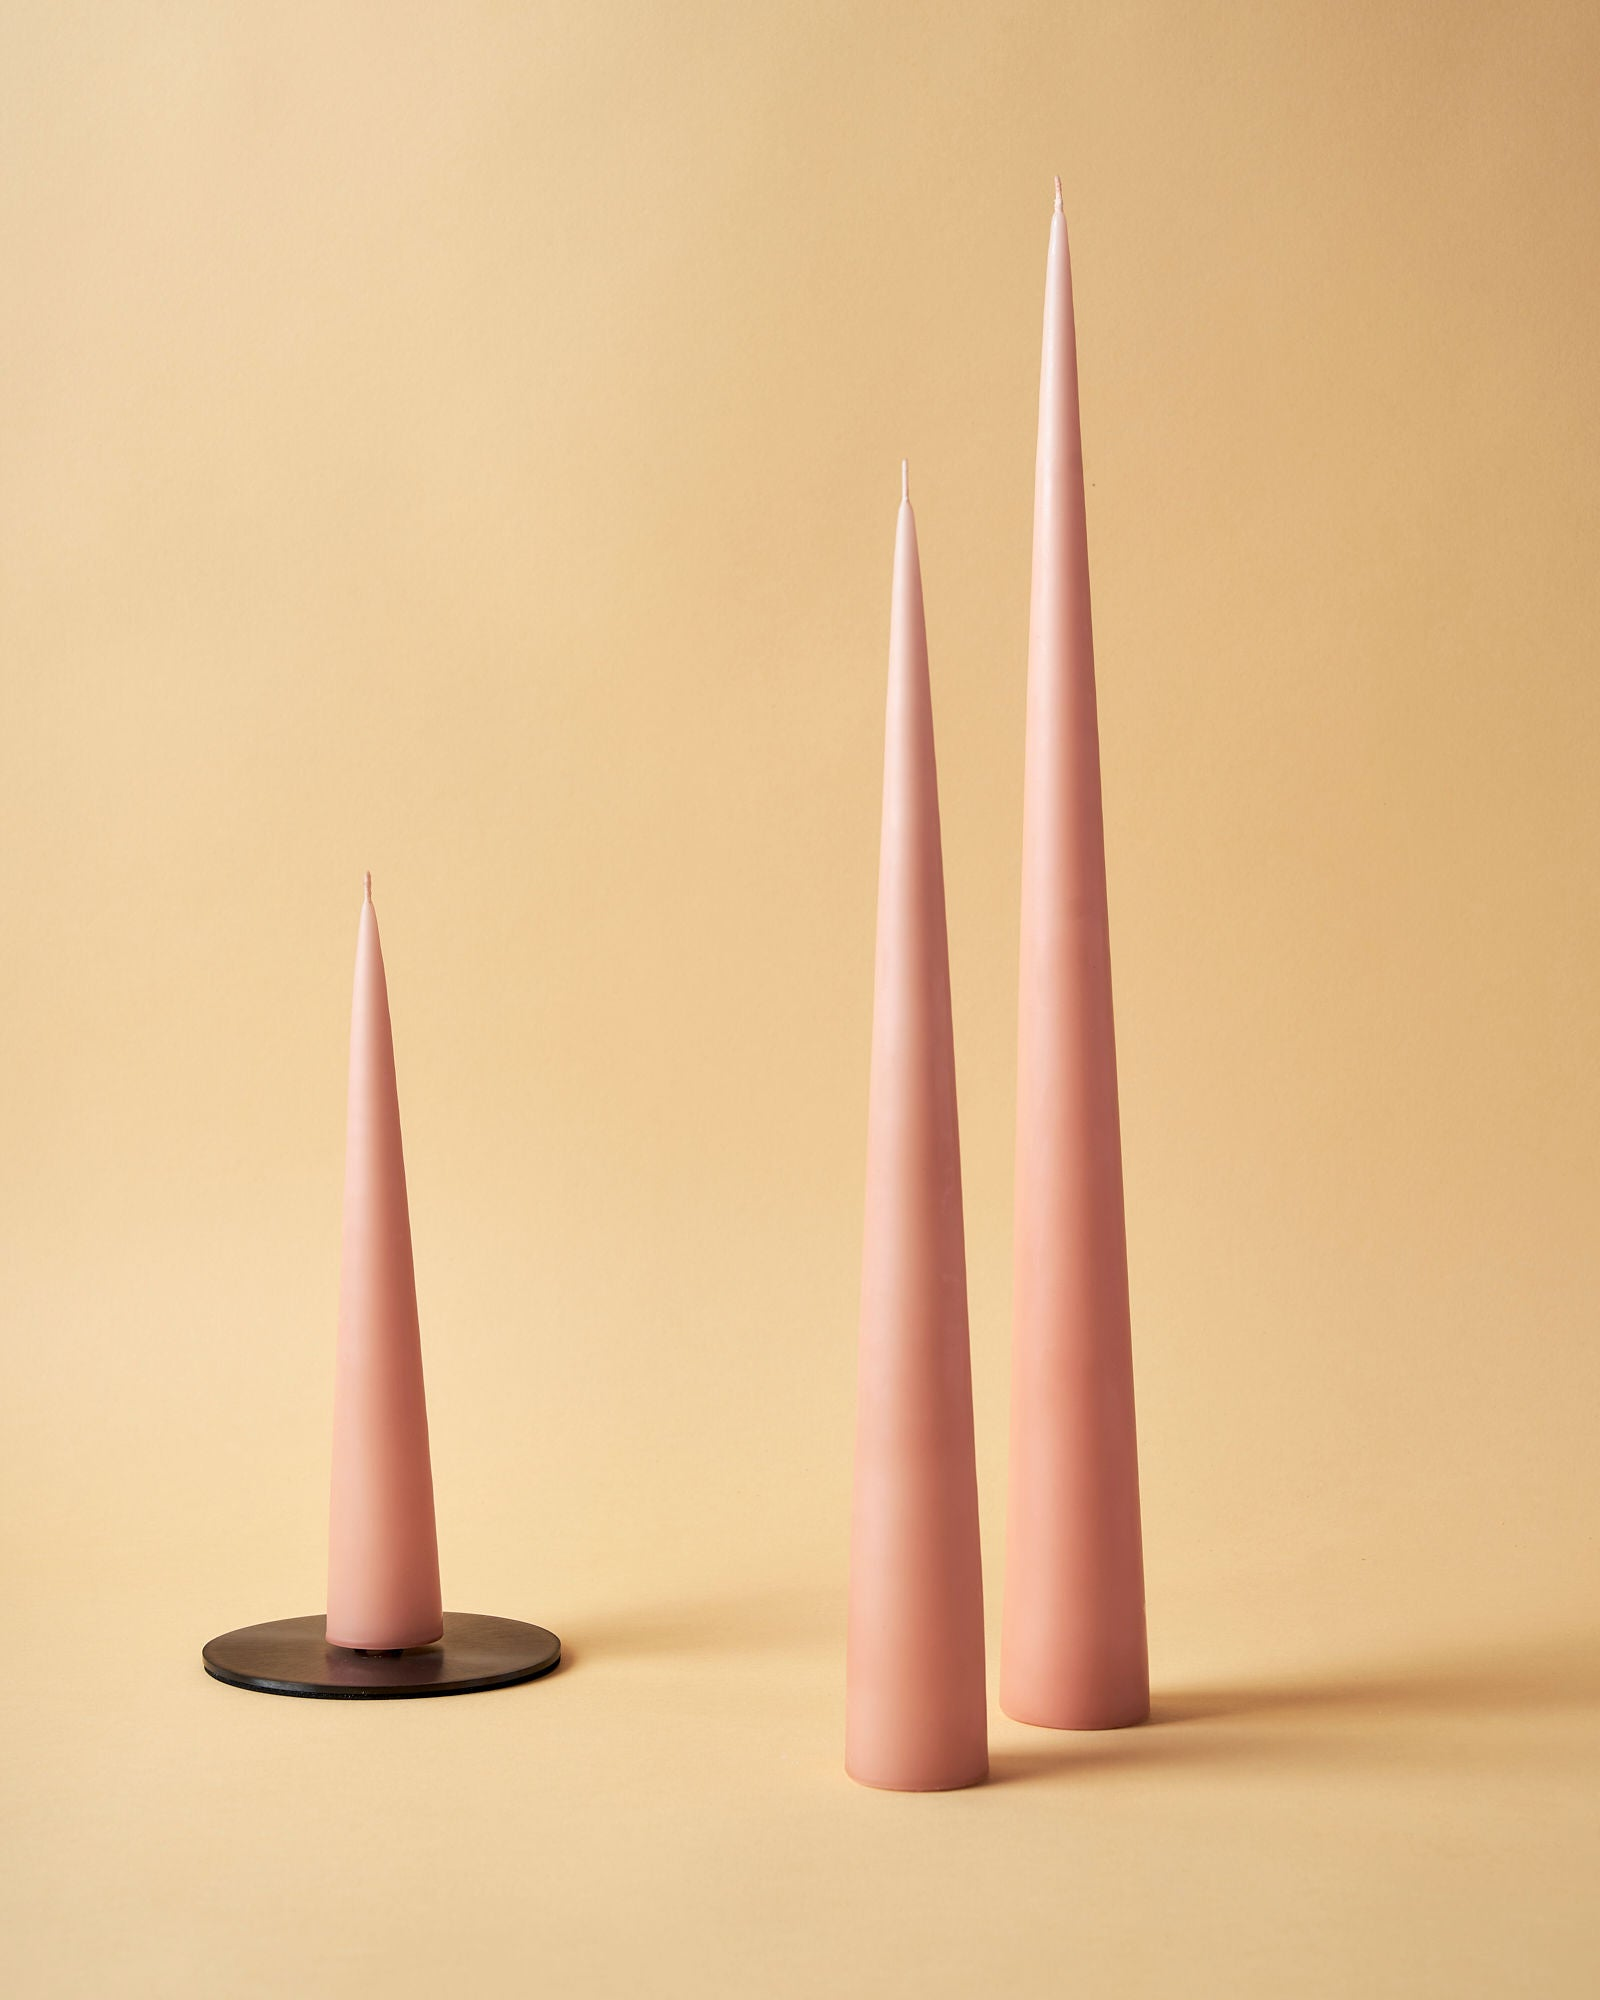 Powder Matte Cone Candles by Ester & Erik